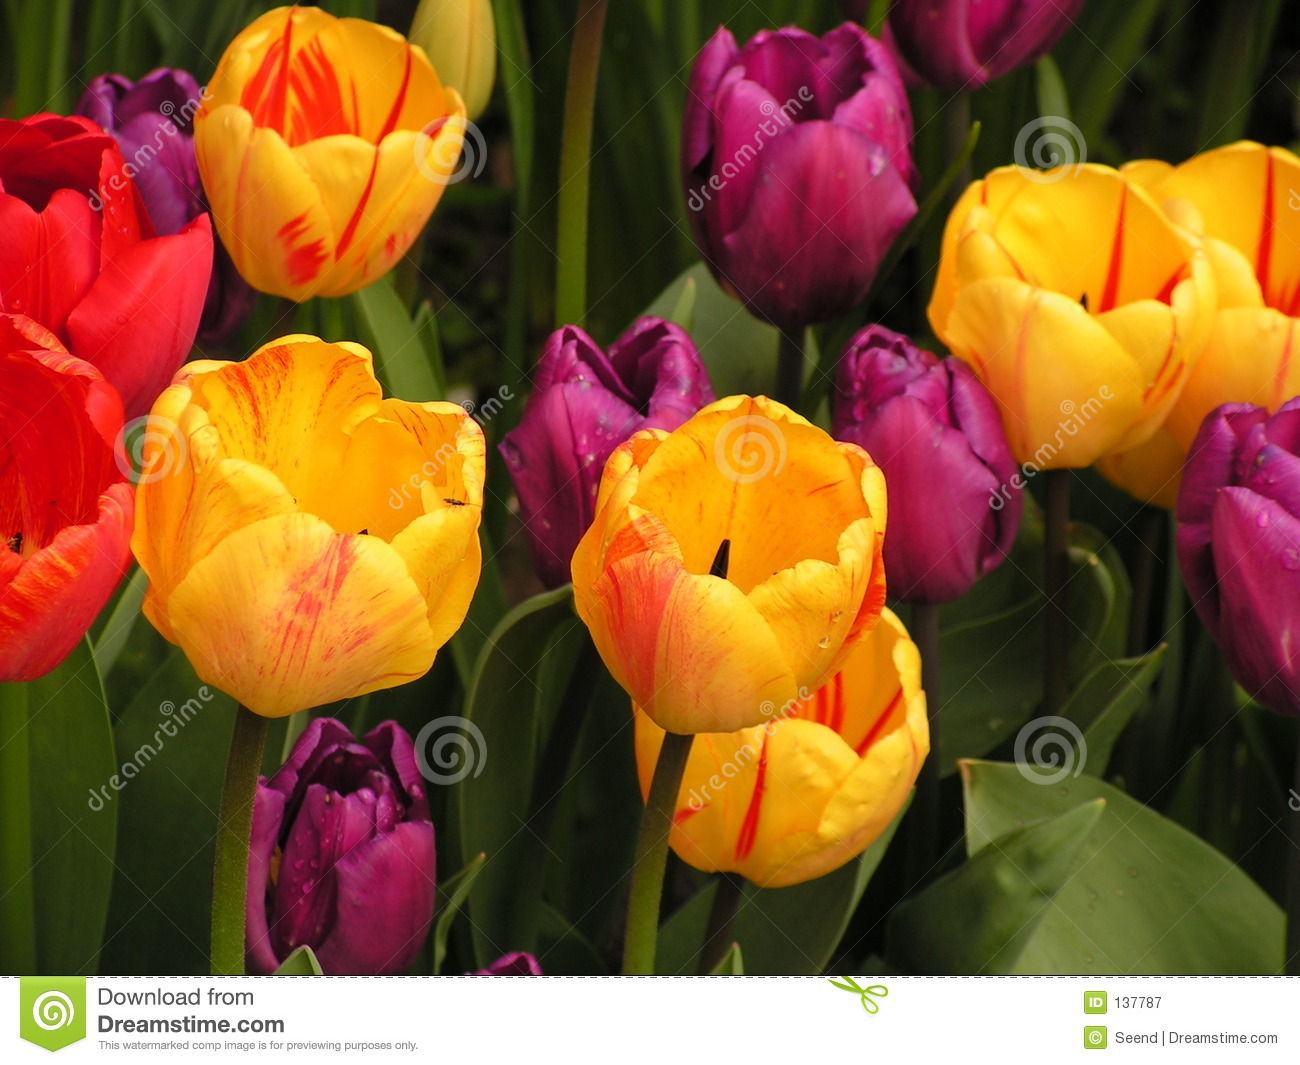 Tulips holandeses